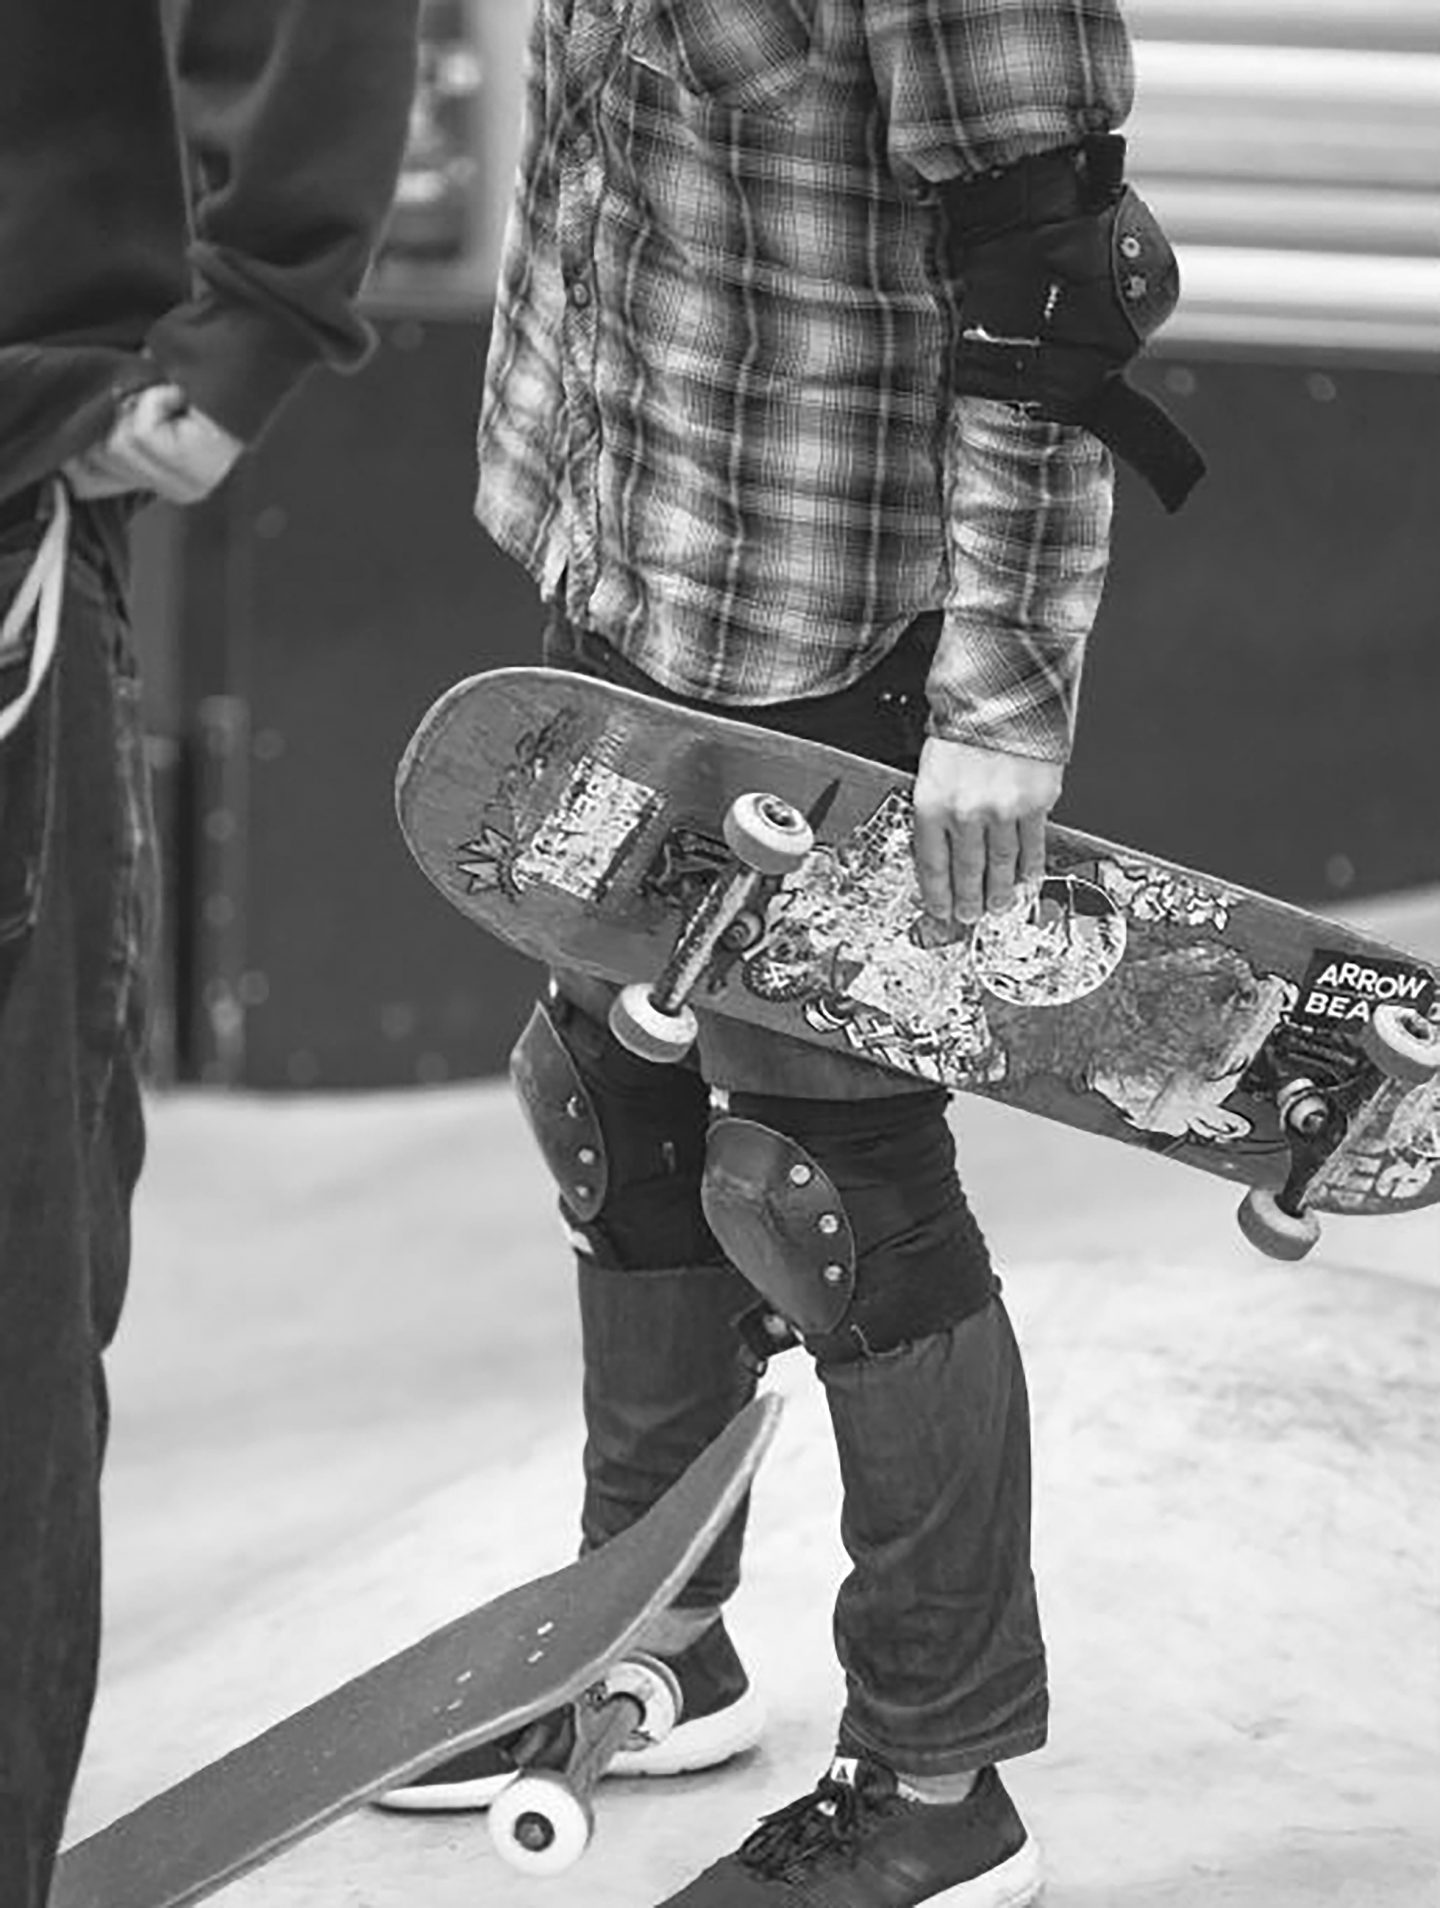 Black and white photo of a skater boy wearing protective knee and elbow pads getting ready to skate. skater, determination, skateboard, hobbies.,